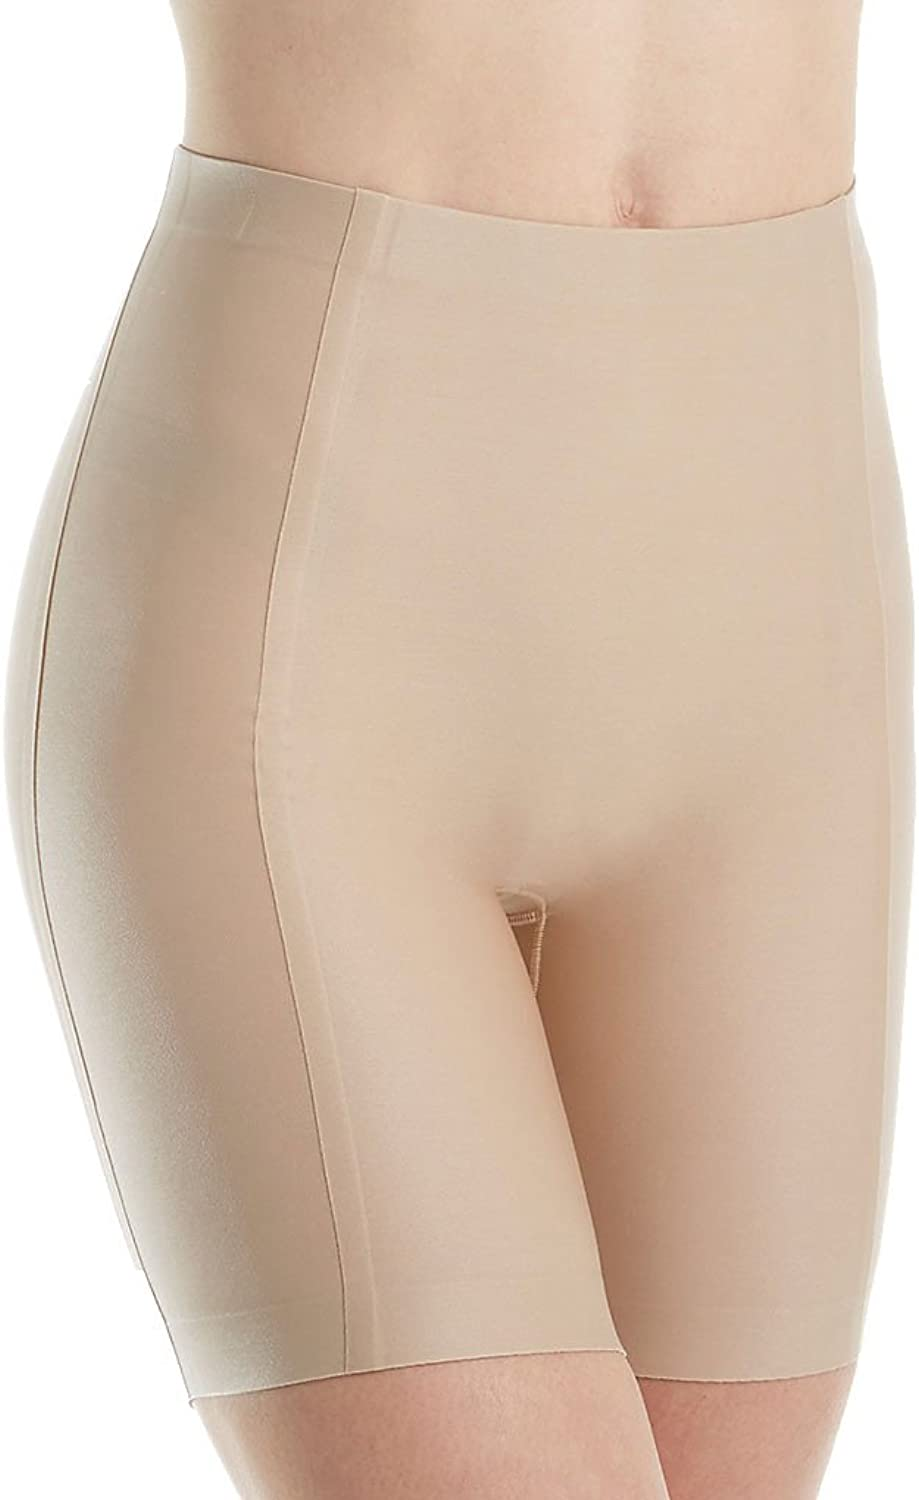 Body Hush Glamour Matte and Shine Miracle Thigh Slimmer (BH1505MS)